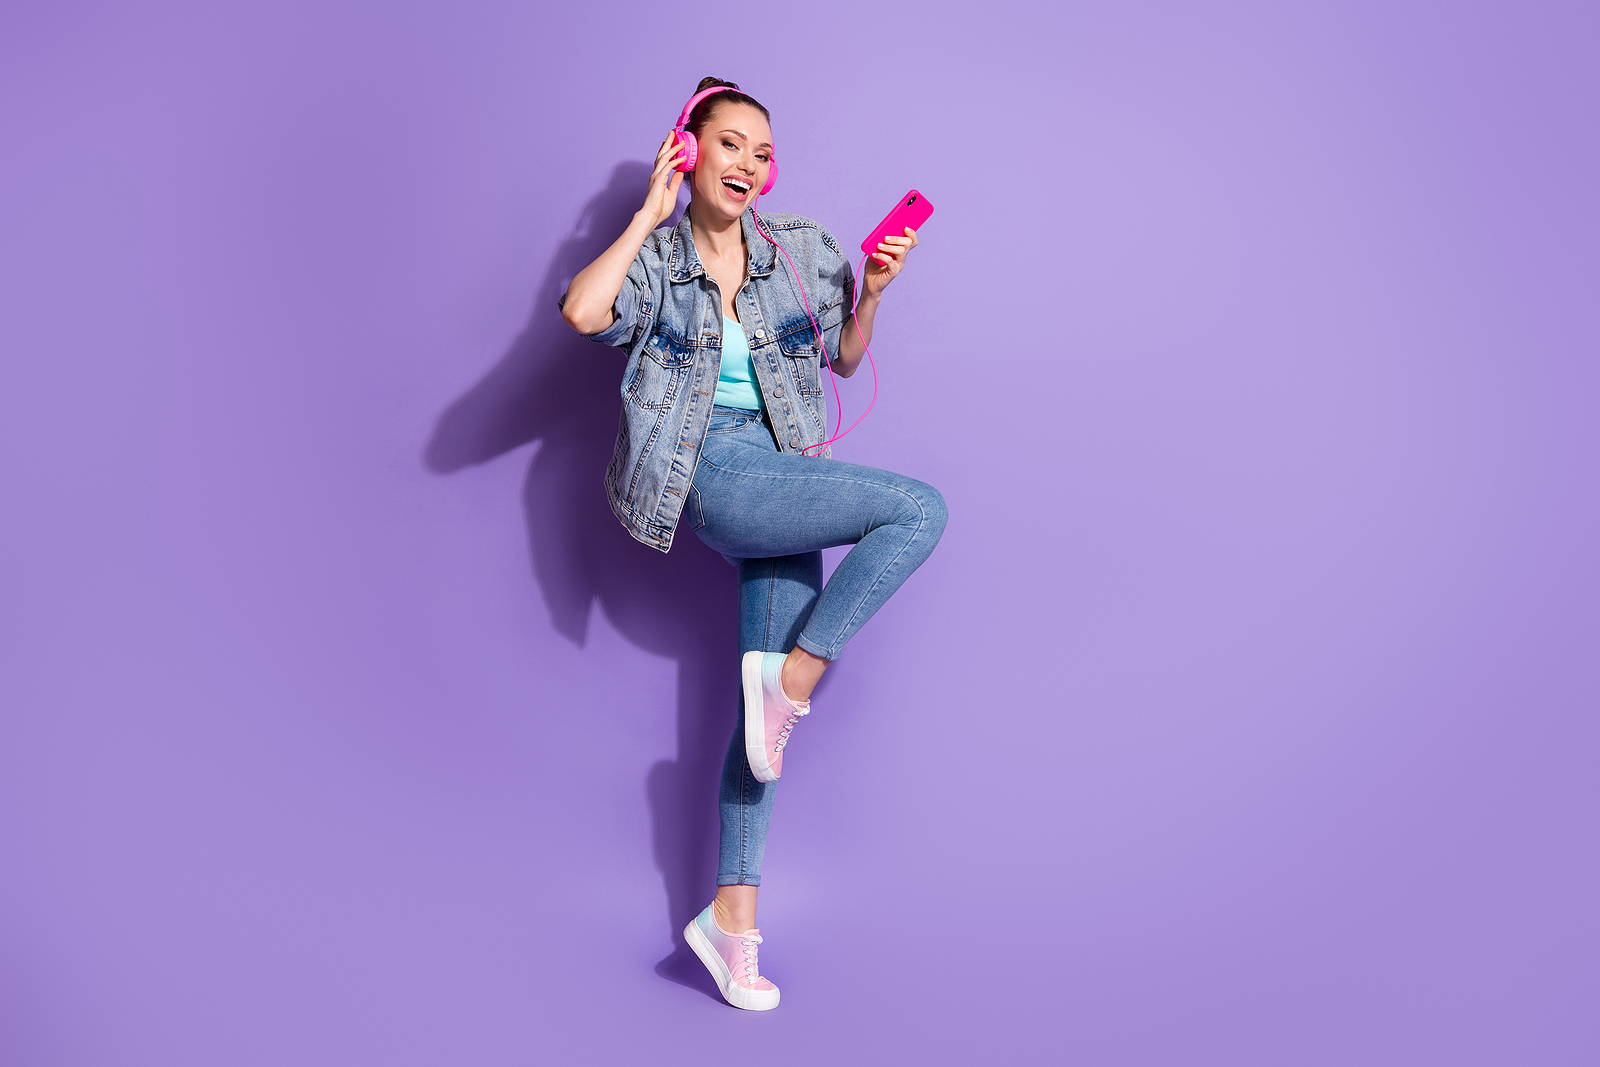 An attractive woman wearing pink headphones against a purple background, jumping in the air and smiling.